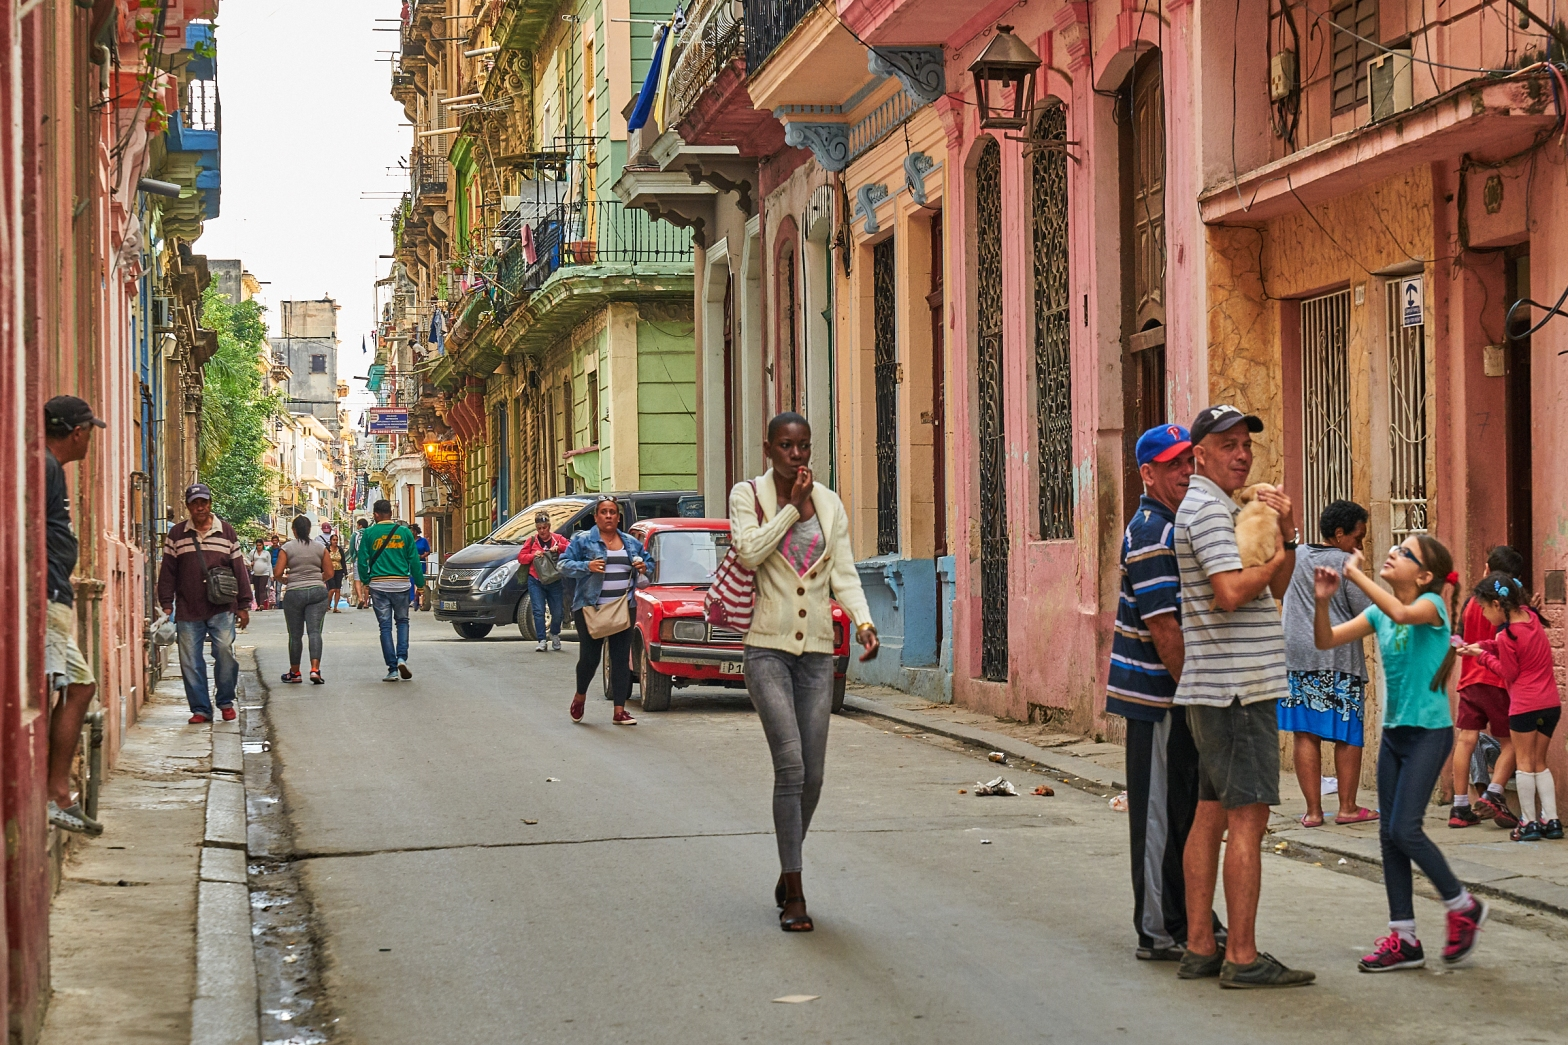 """File:Havana, Cuba (46111312232).jpg"" by Pedro Szekely from Los Angeles, USA is licensed under CC BY-SA 2.0. To view a copy of this license, visit https://creativecommons.org/licenses/by-sa/2.0"